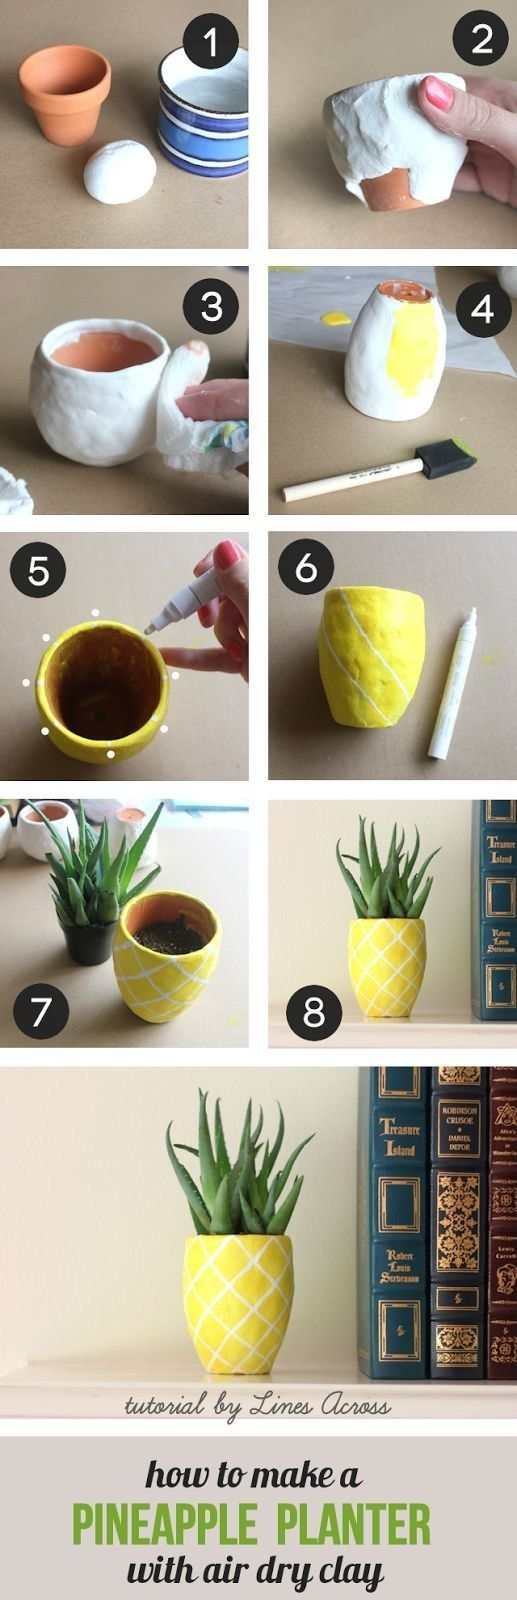 DIY Pineapple Planter - great idea!